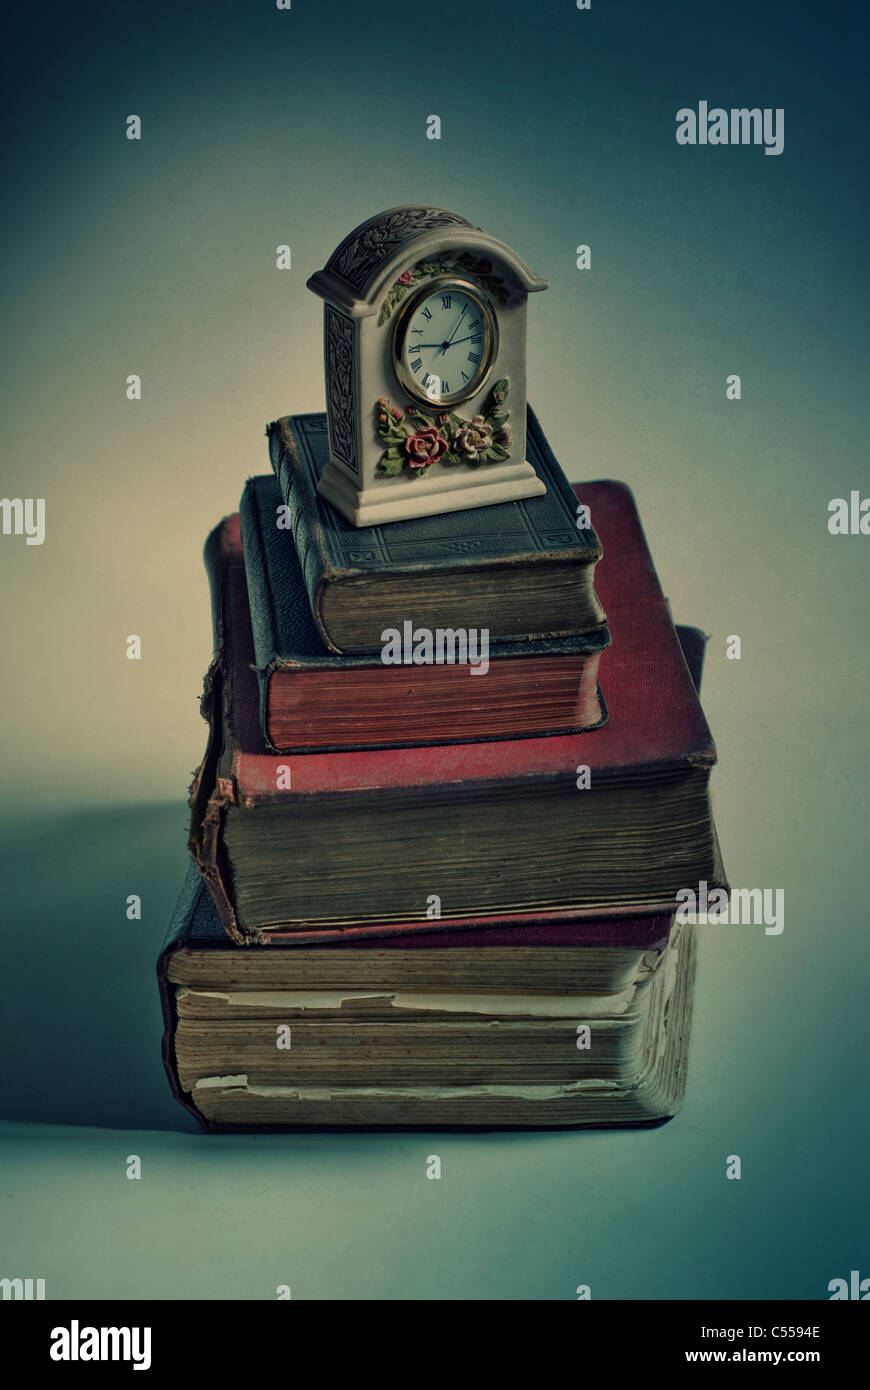 Old fashioned clock over a pile of books Stock Photo